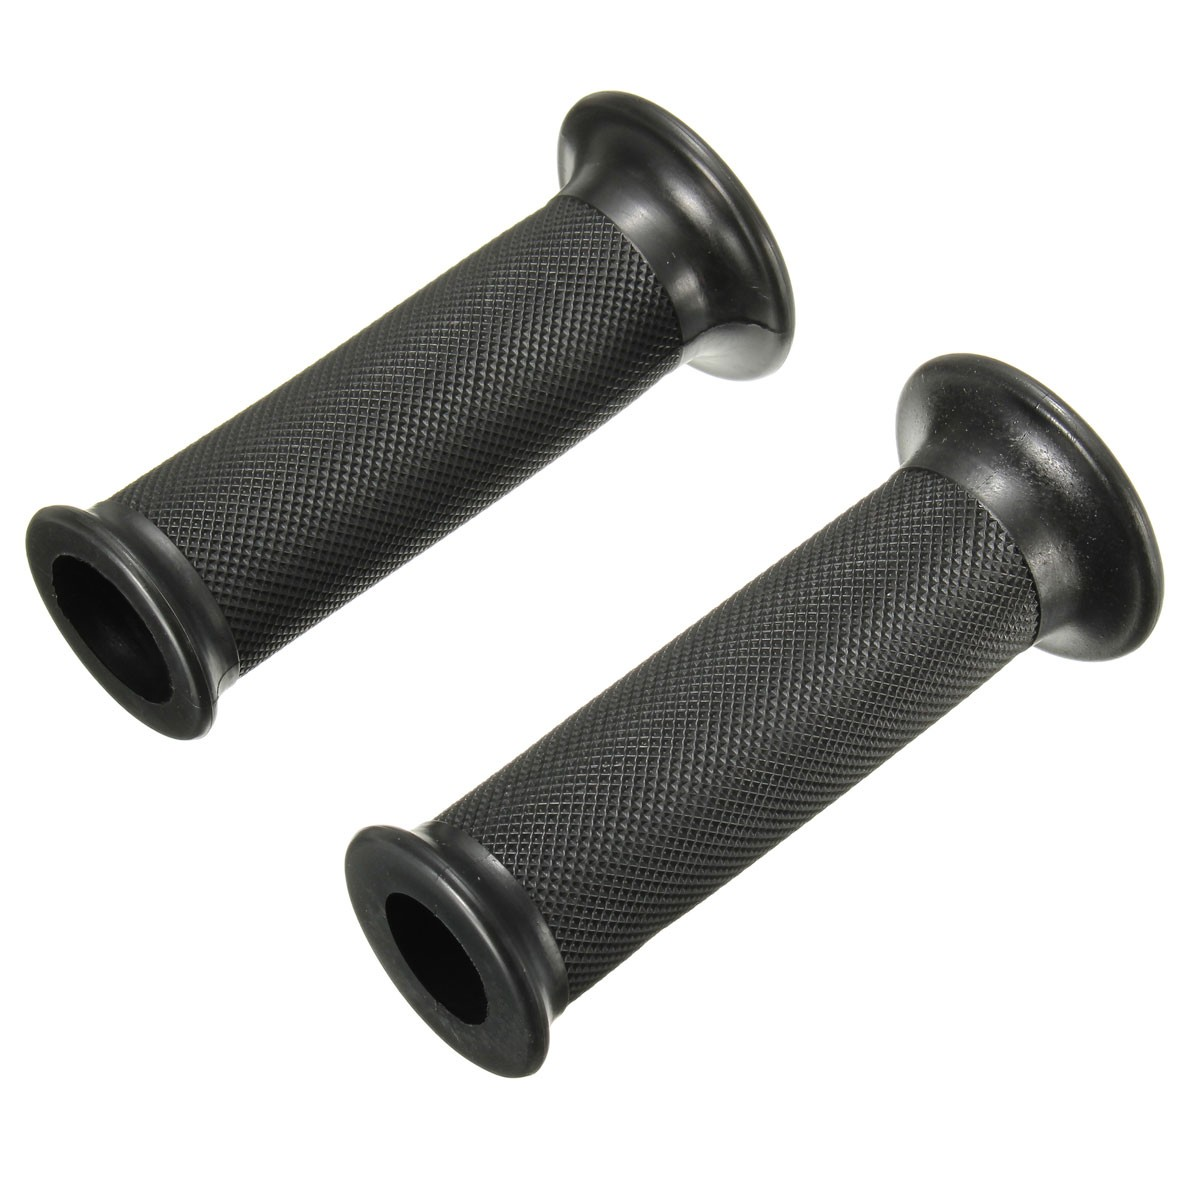 2PCs Universal Black Rubber Motorcycle Handlebars Hand Grips 22mm грипсы ethic rubber grips blue